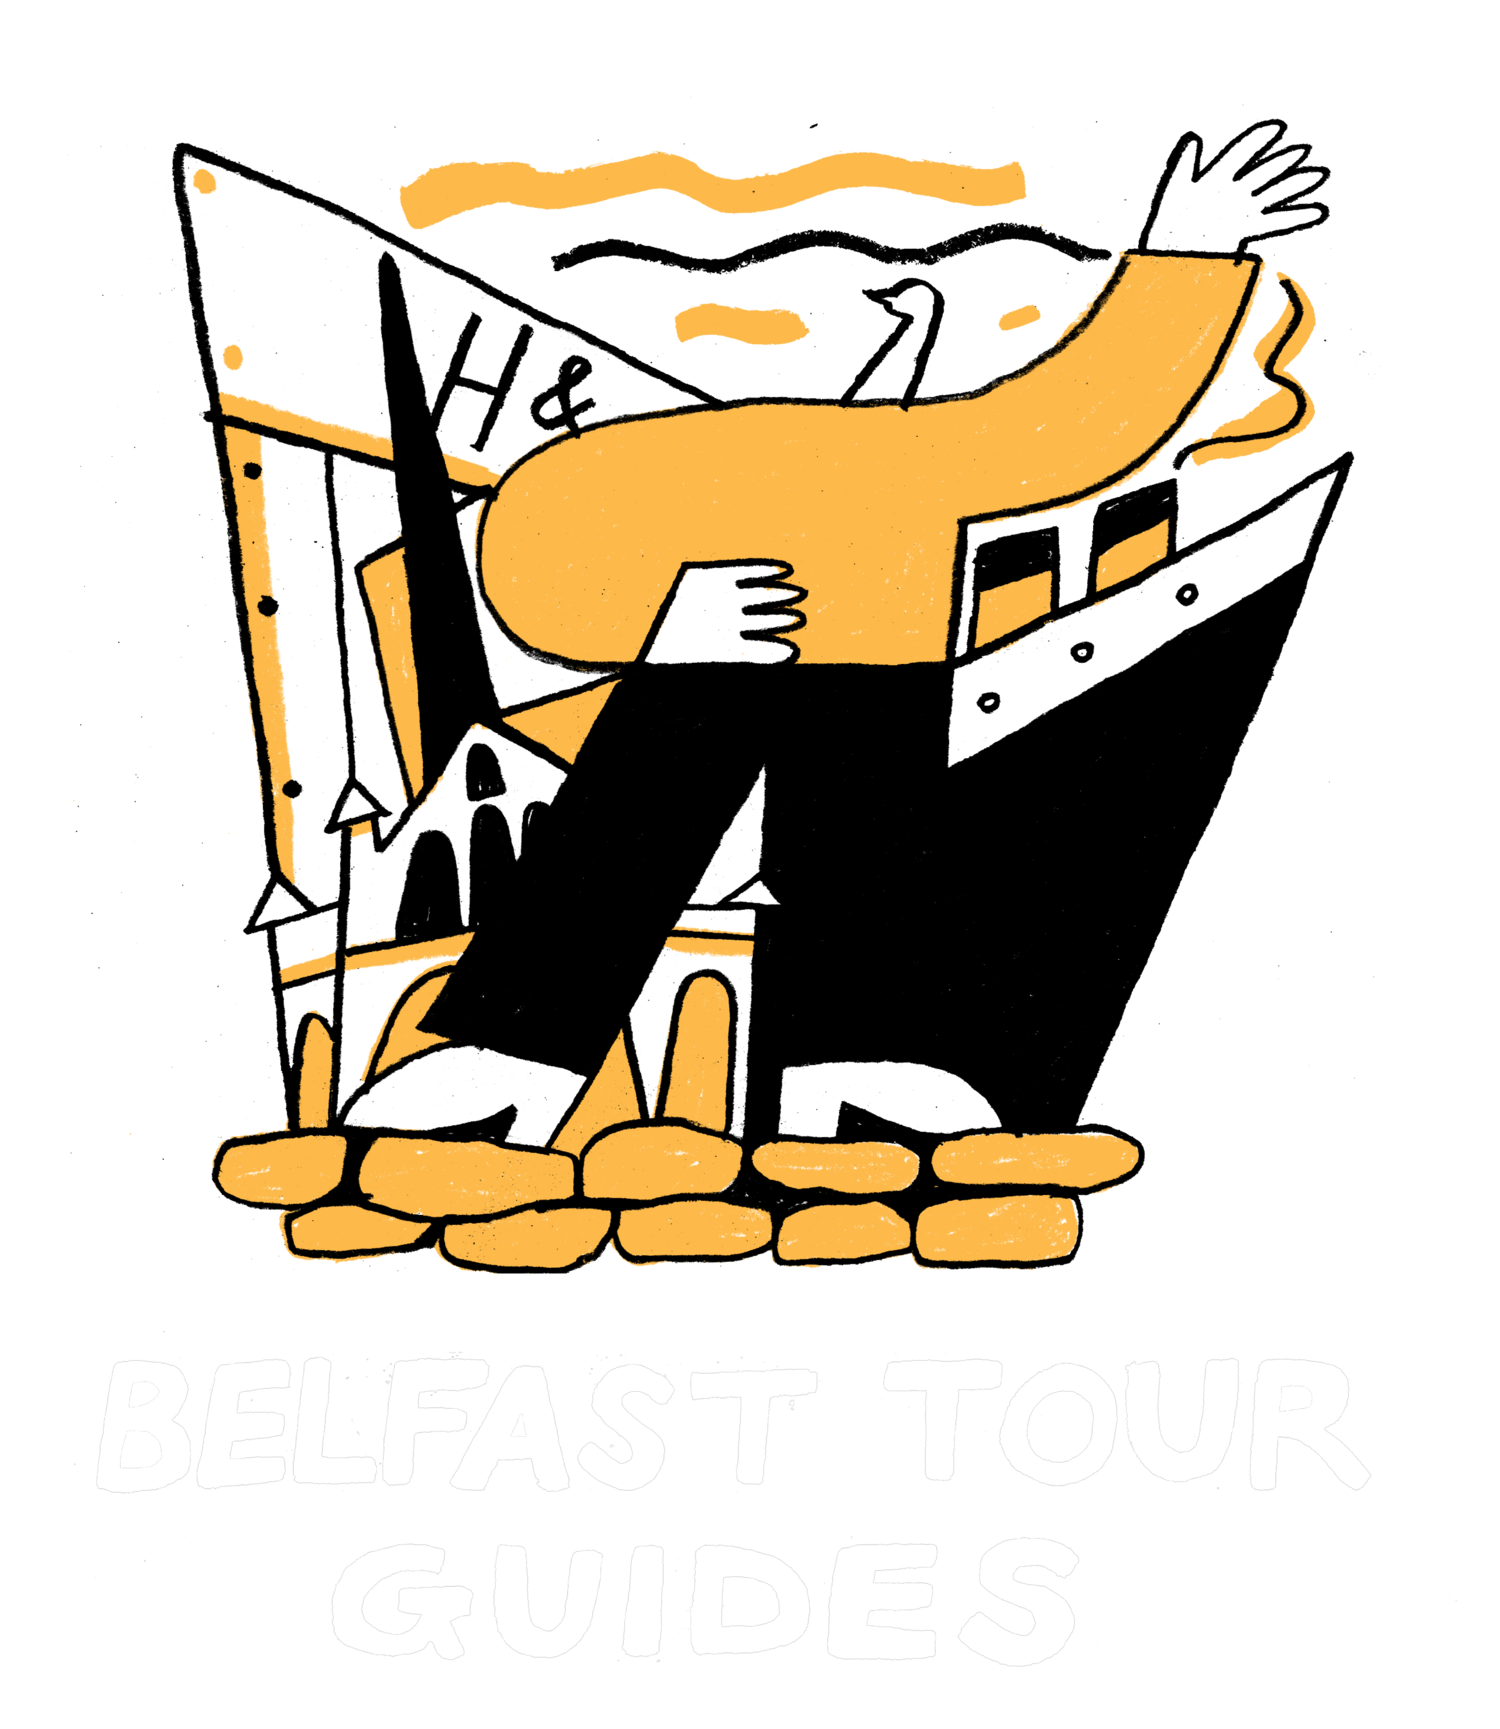 Belfast Tour Guides